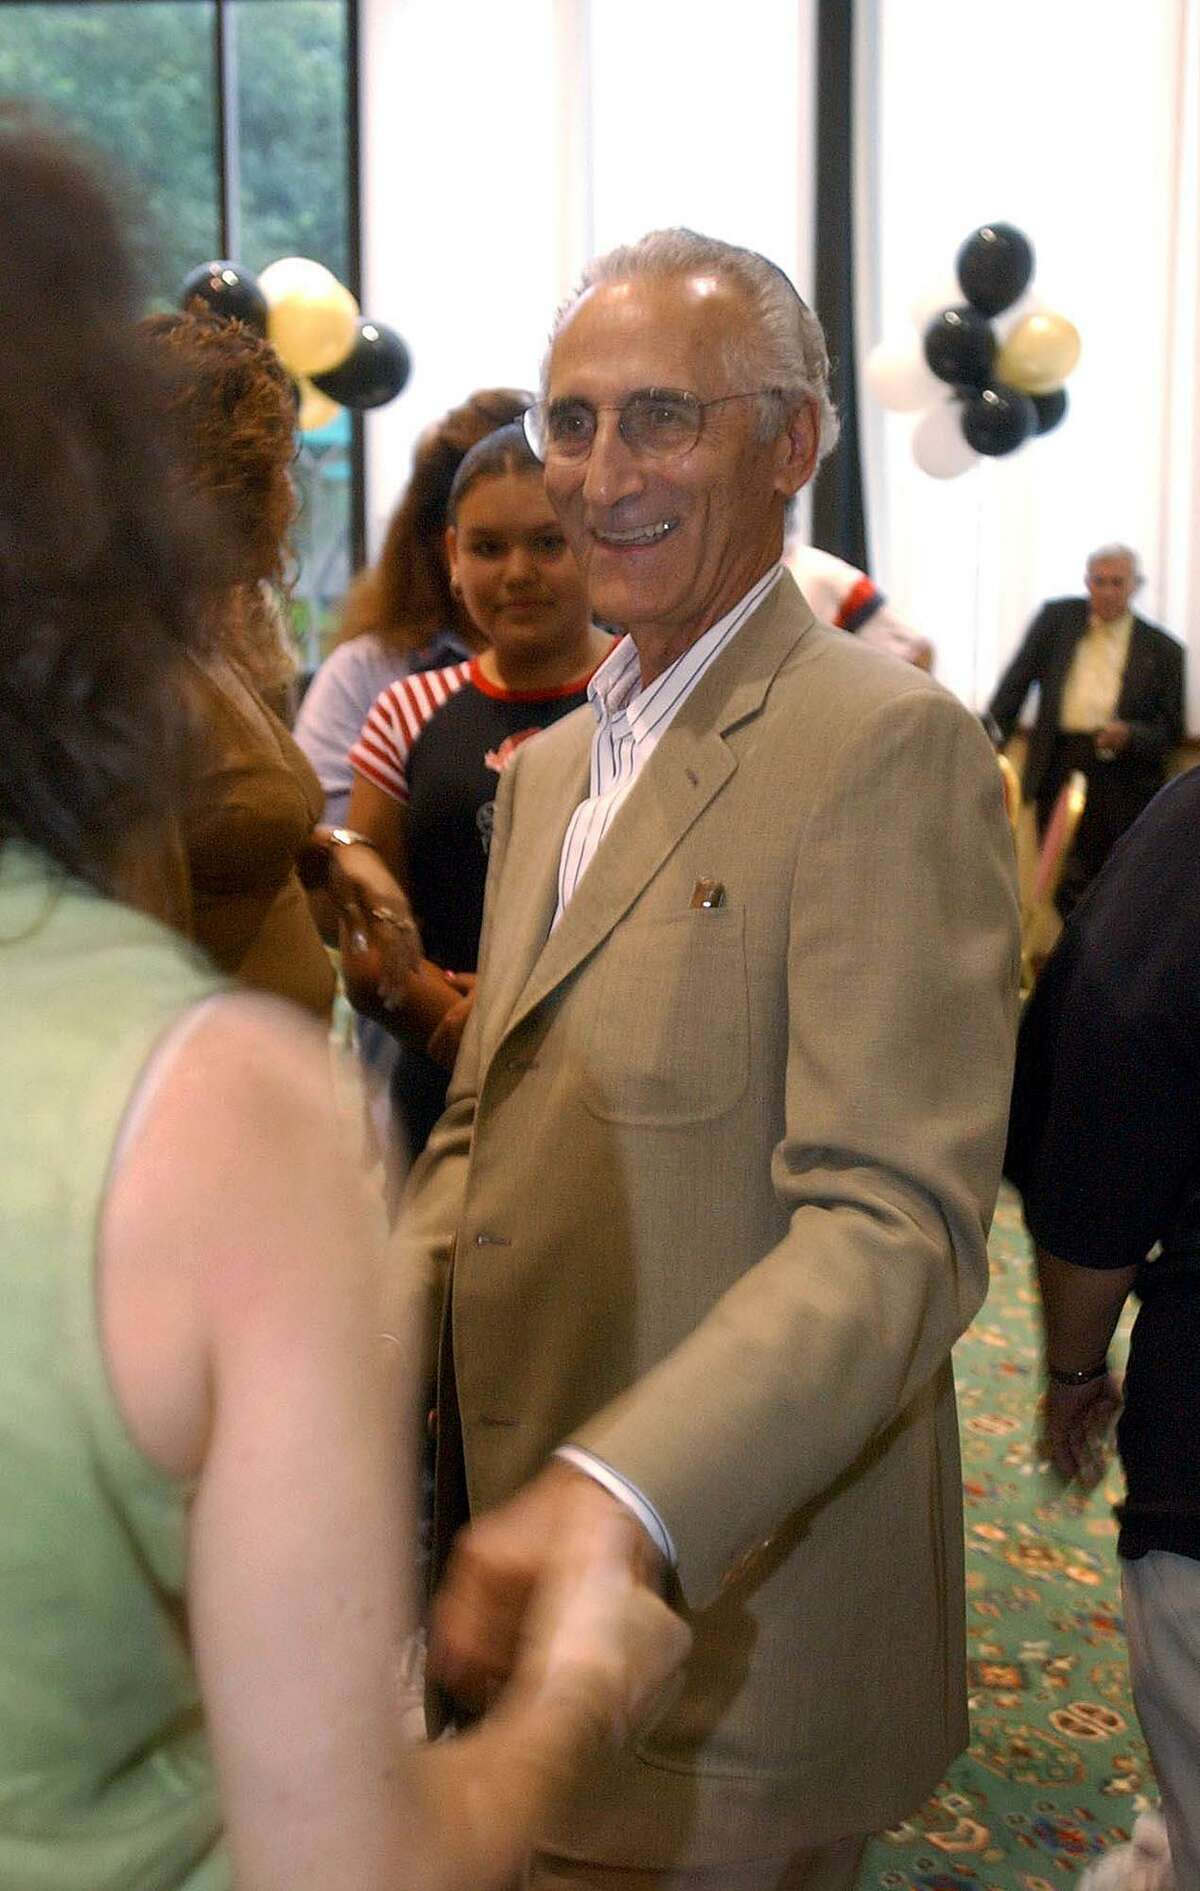 METRO - San Antonio City Council Candidate Bert Cecconi greets supporters at the Marriott, Loop 410 and Interstate 10, during a gathering to await results of City Council District 8 runoff elections on Tuesday, May 27, 2003. BILLY CALZADA / STAFF